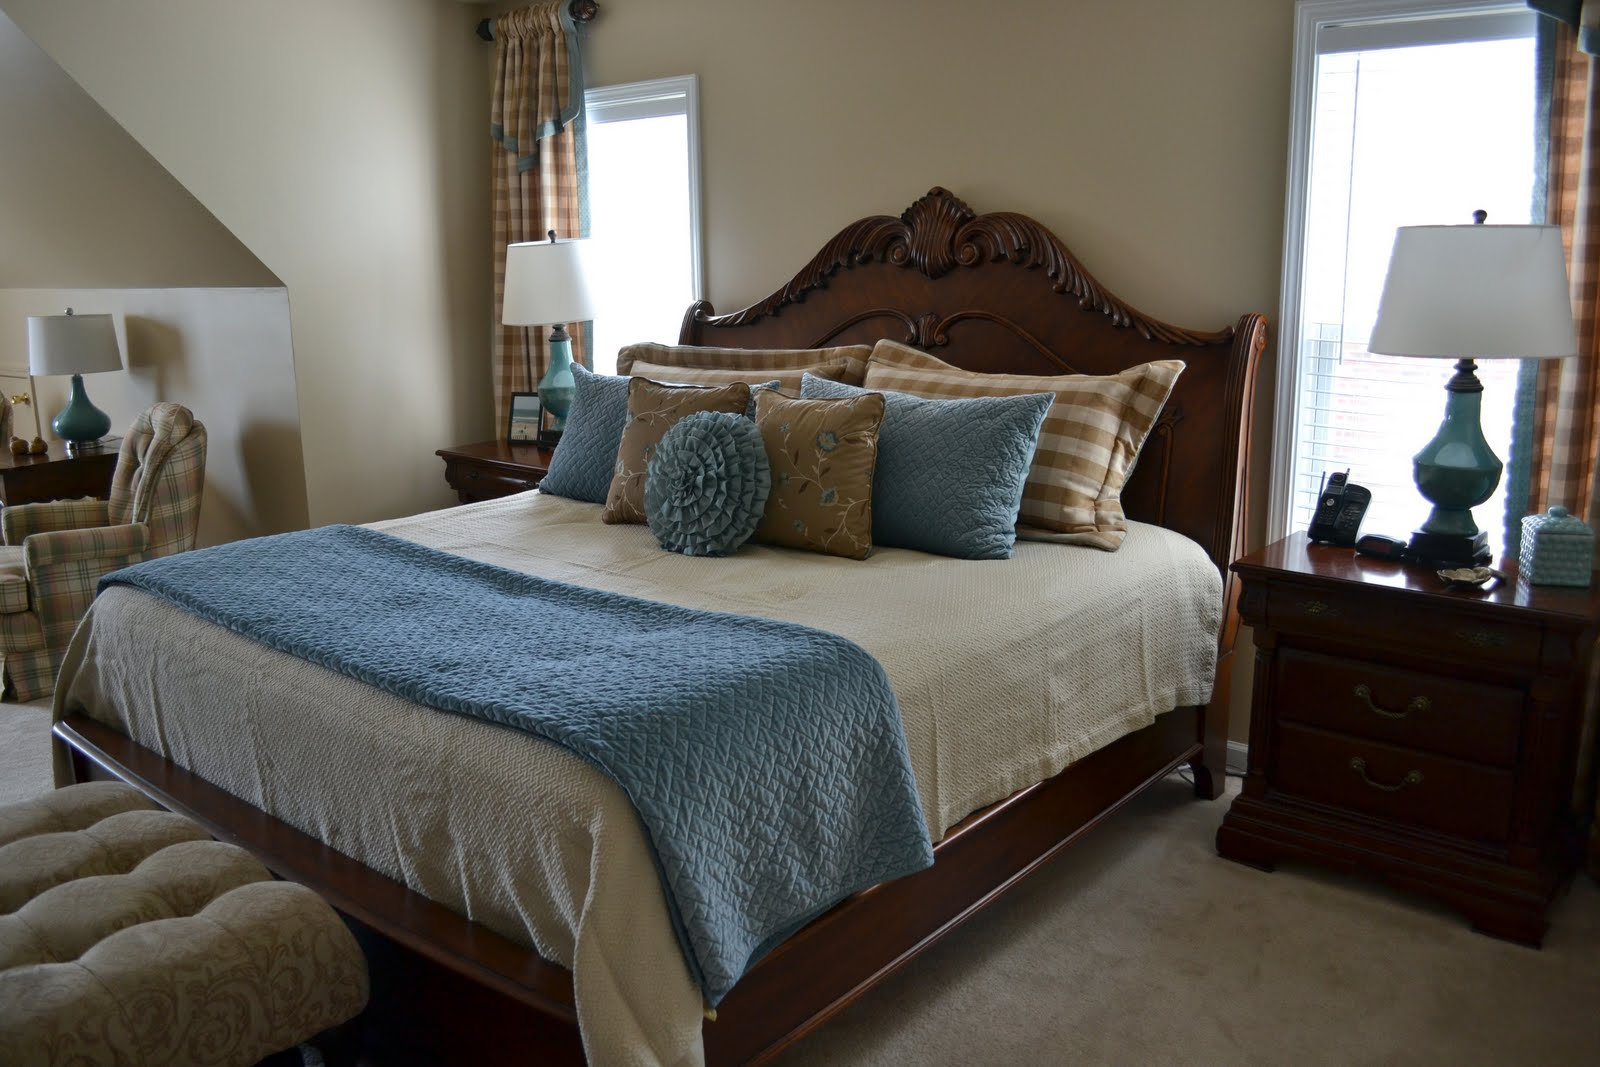 bedroom renovation featuring buffalo check curtains. Black Bedroom Furniture Sets. Home Design Ideas